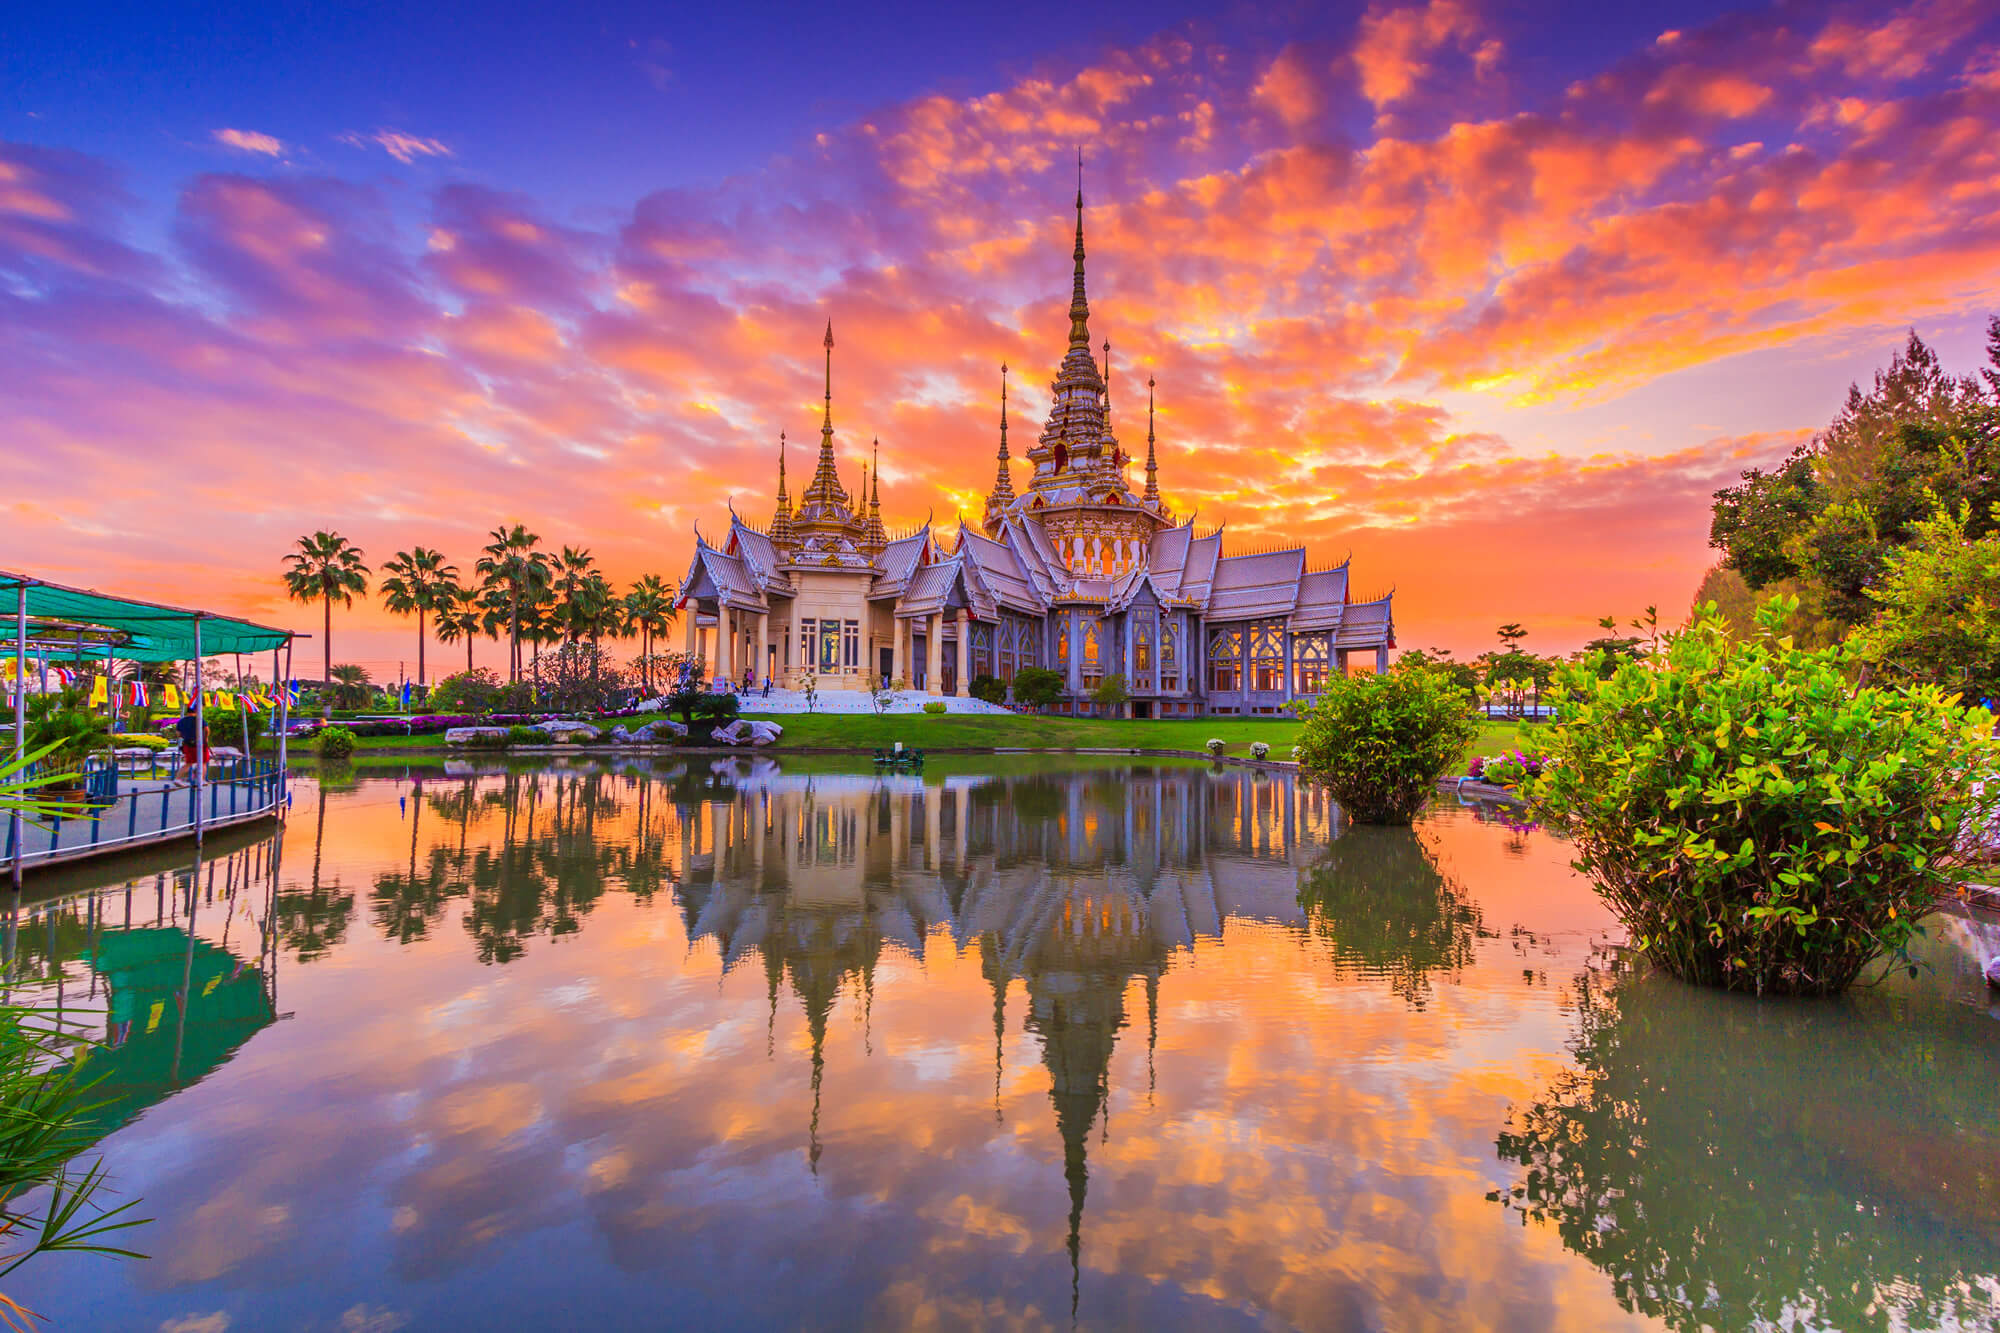 Wat None Kum Temple, Thailand